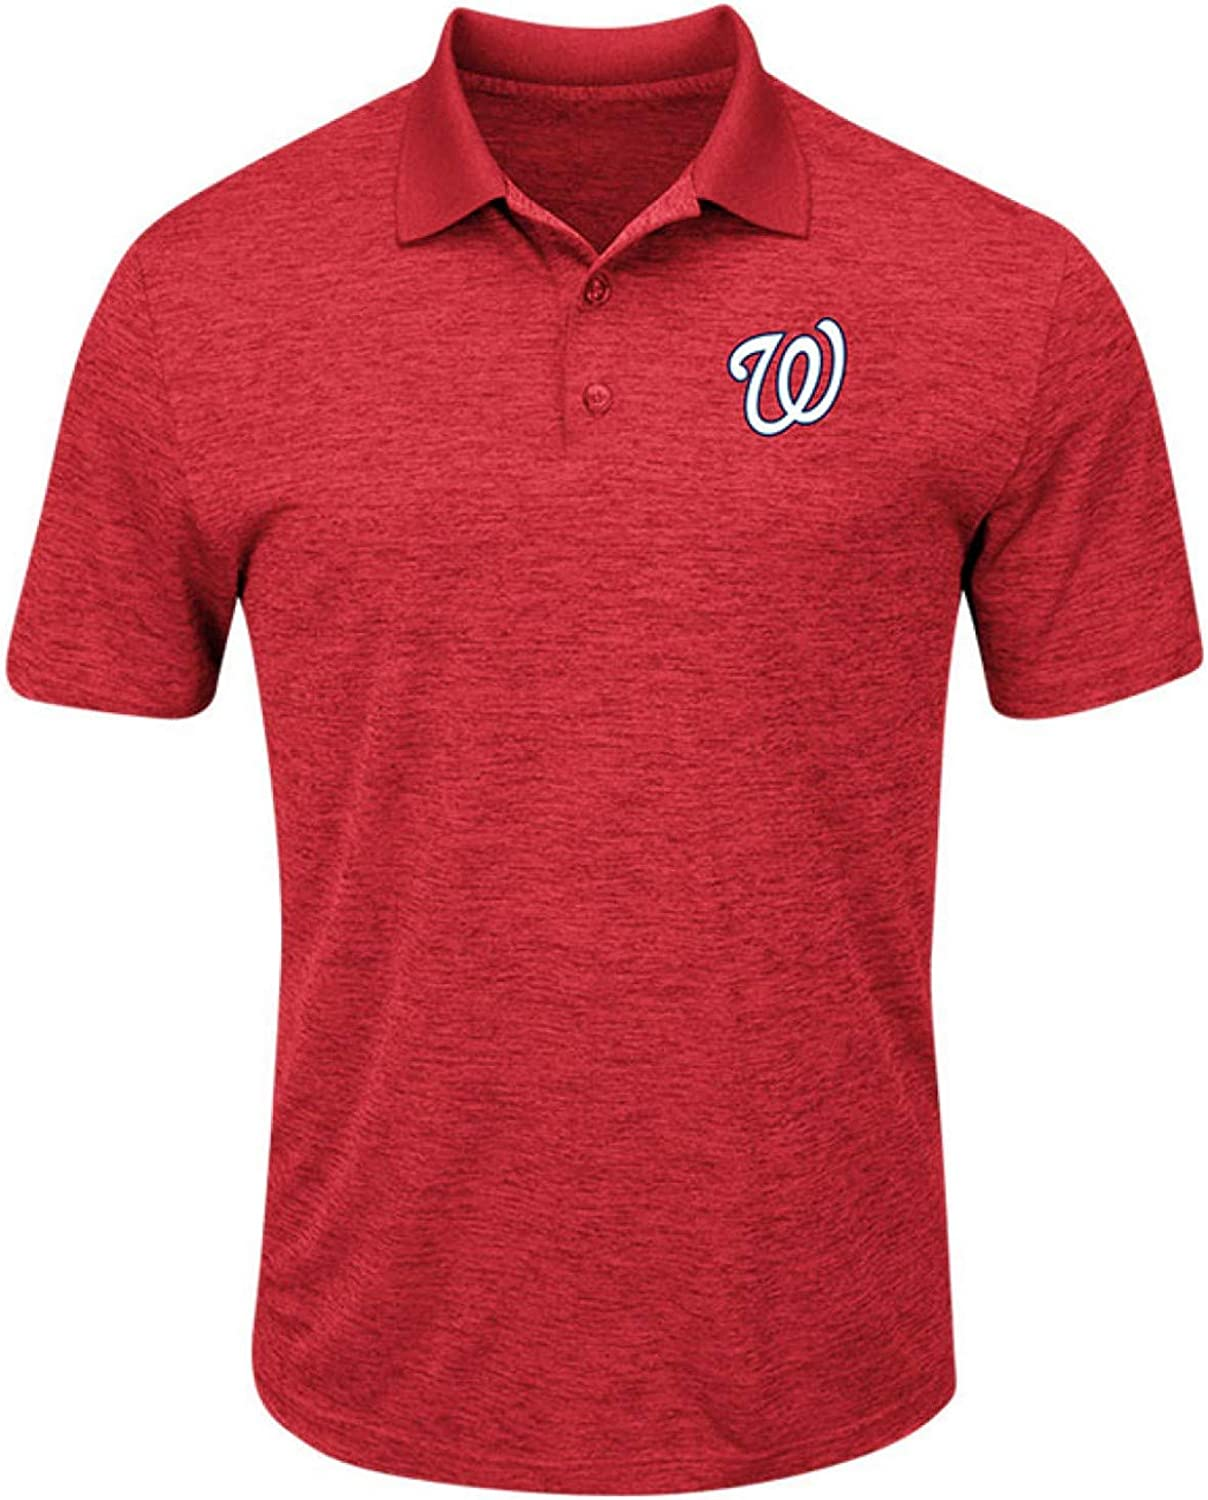 Majestic Men's Washington Nationals First Hit Polo Shirt (Small)